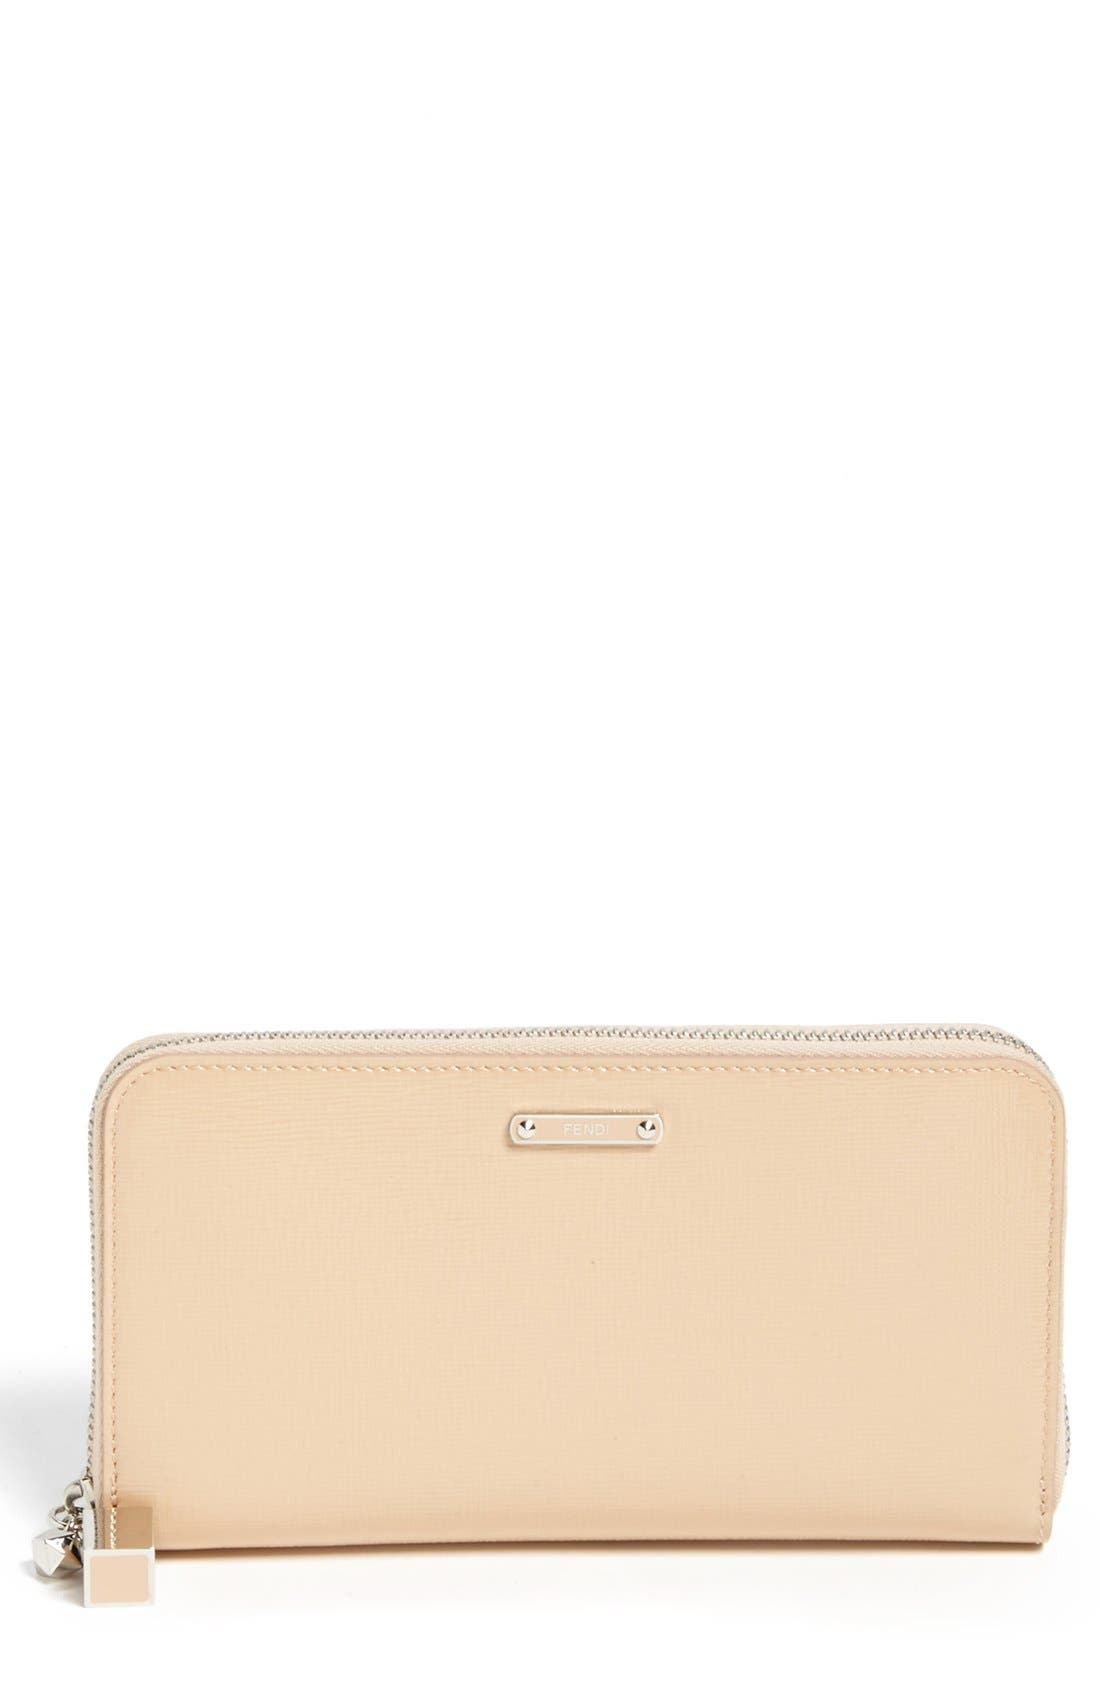 Main Image - Fendi 'Crayons - Vernice' Leather Continental Wallet